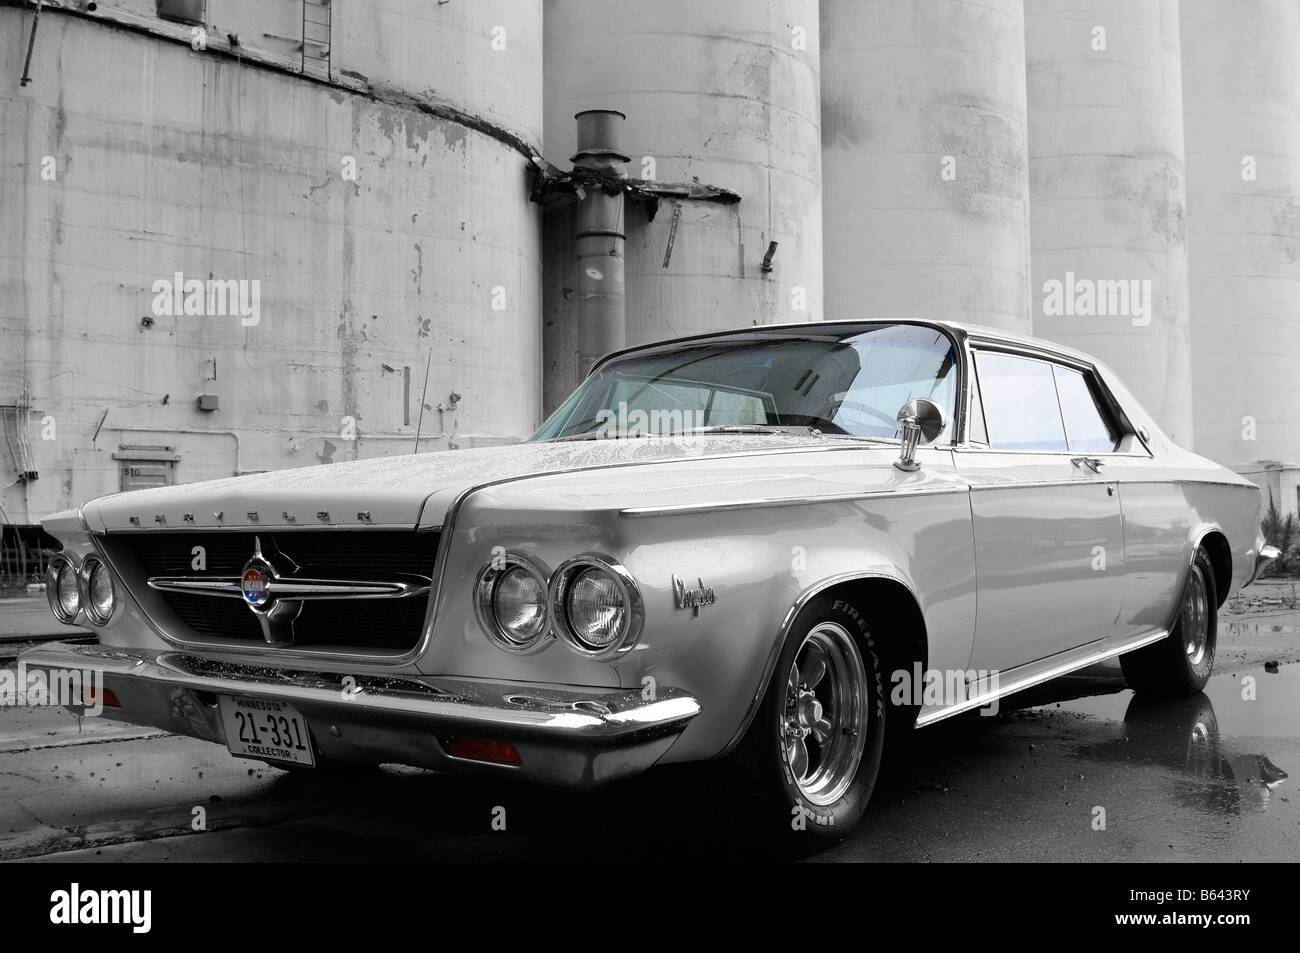 1963 Chrysler 300 white two door classic car by industrial